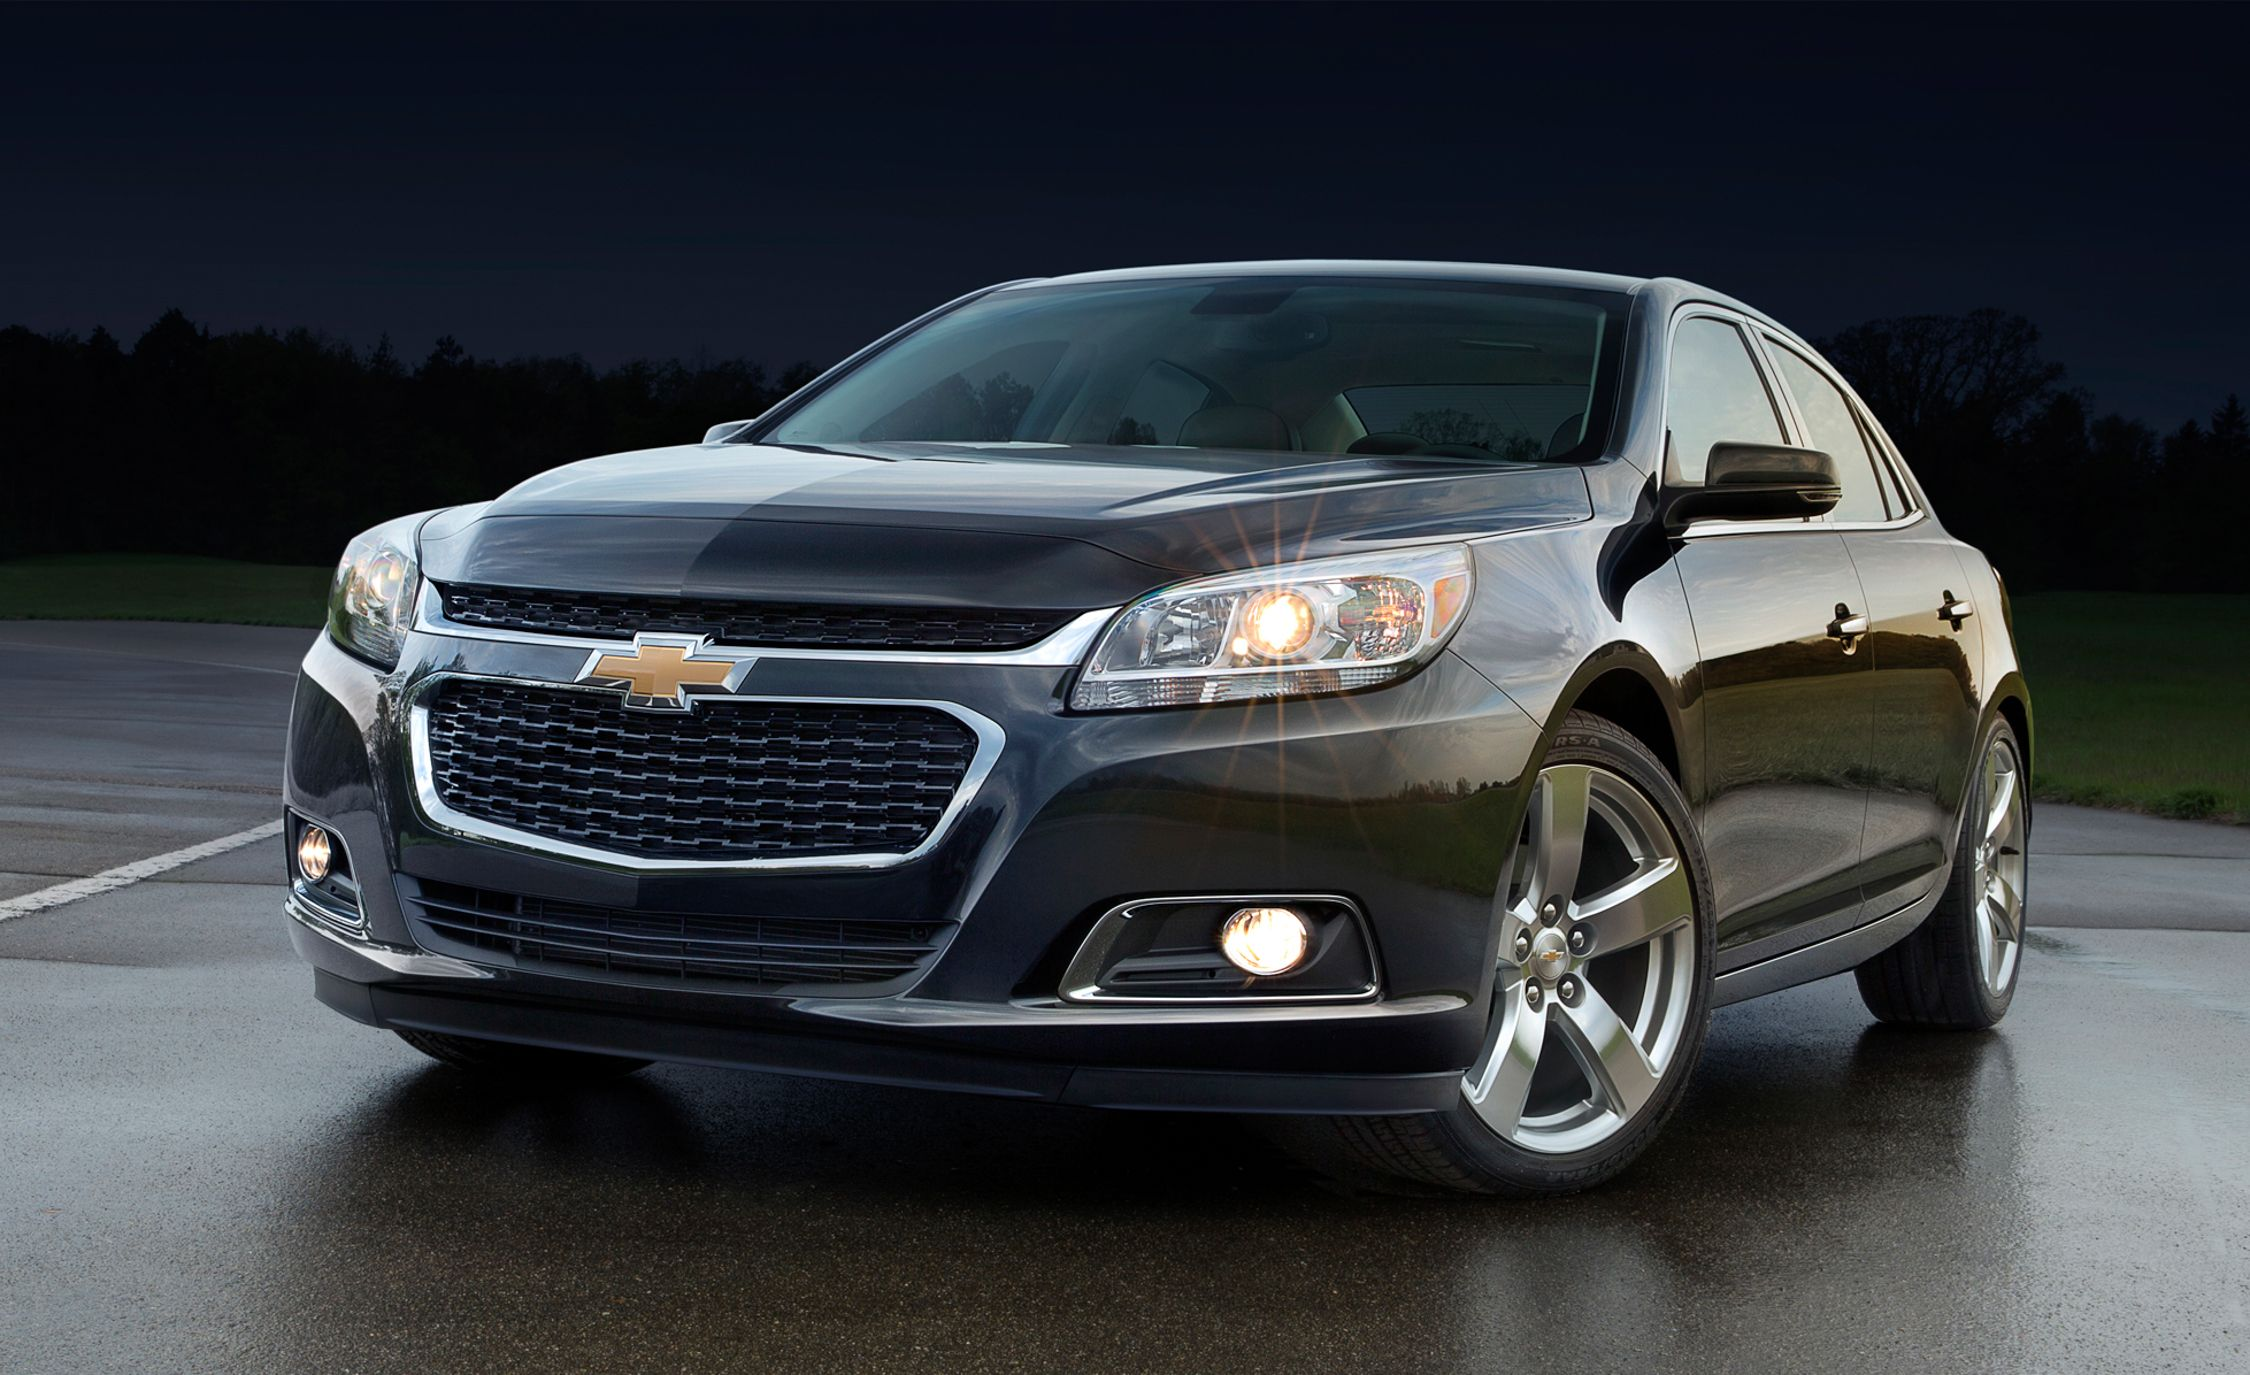 2017 Chevrolet Malibu Photos And Info 8211 News Car Driver